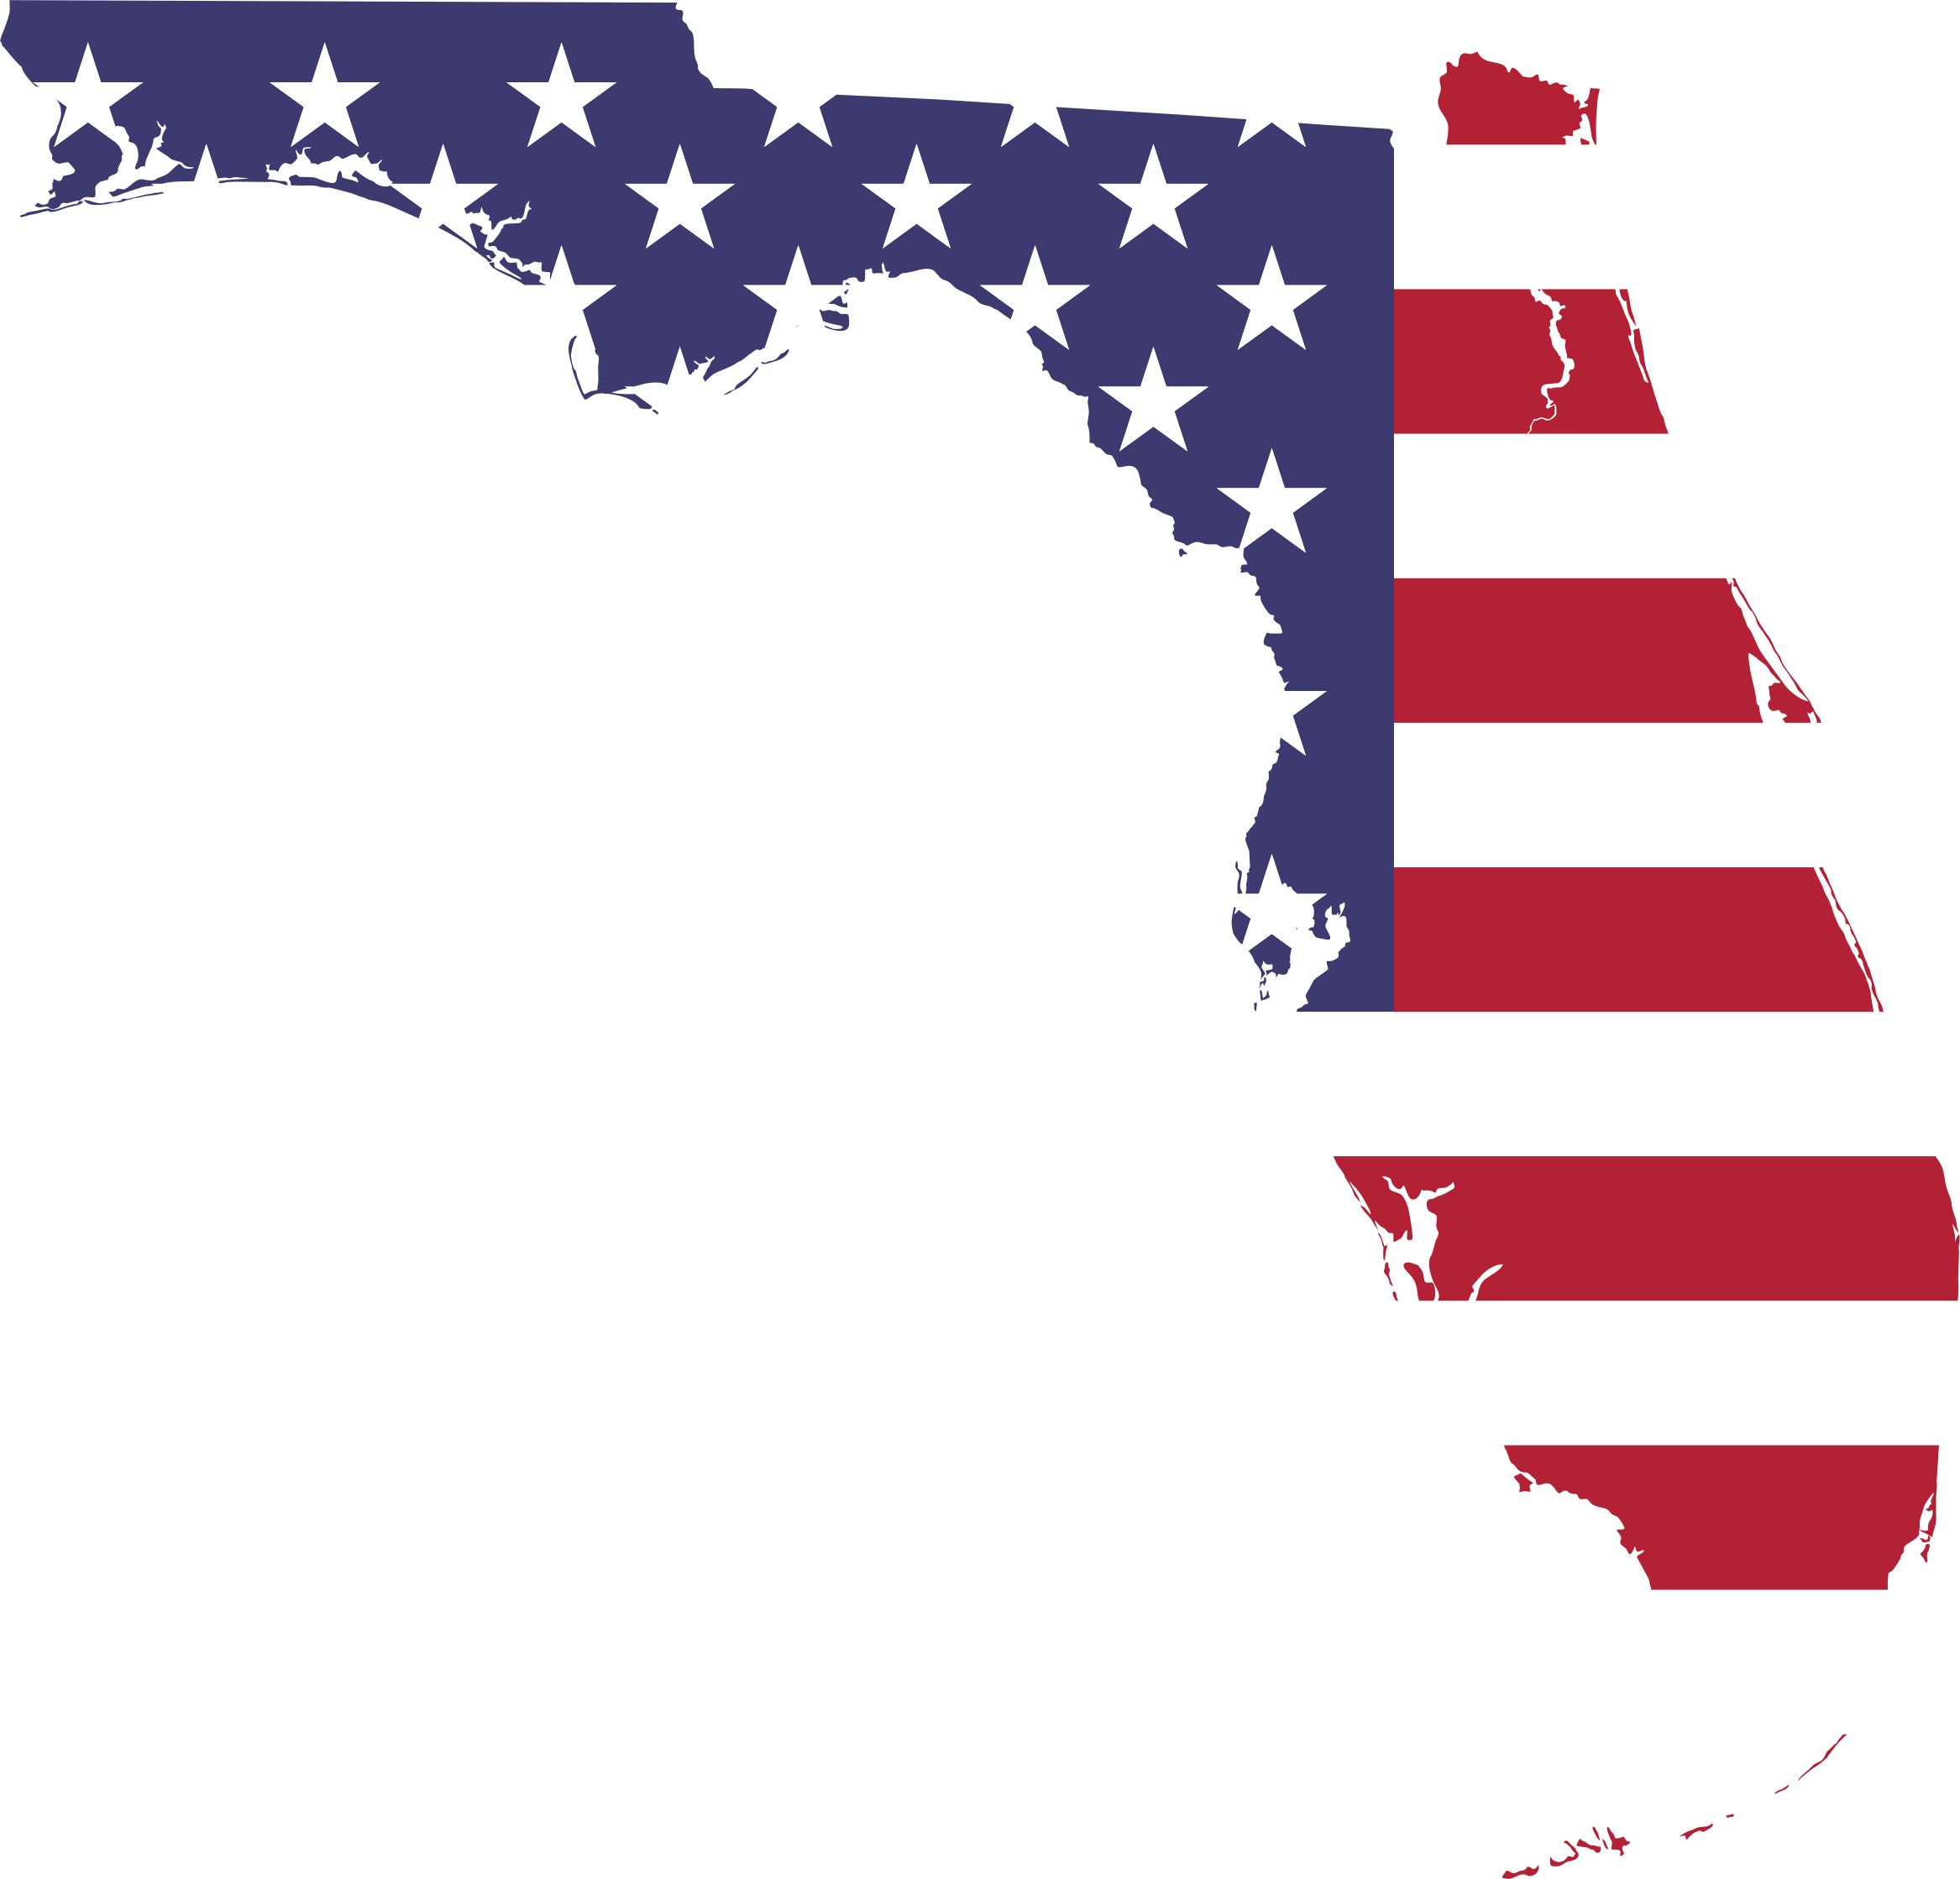 Usa clipart flag florida, Usa flag florida Transparent FREE.